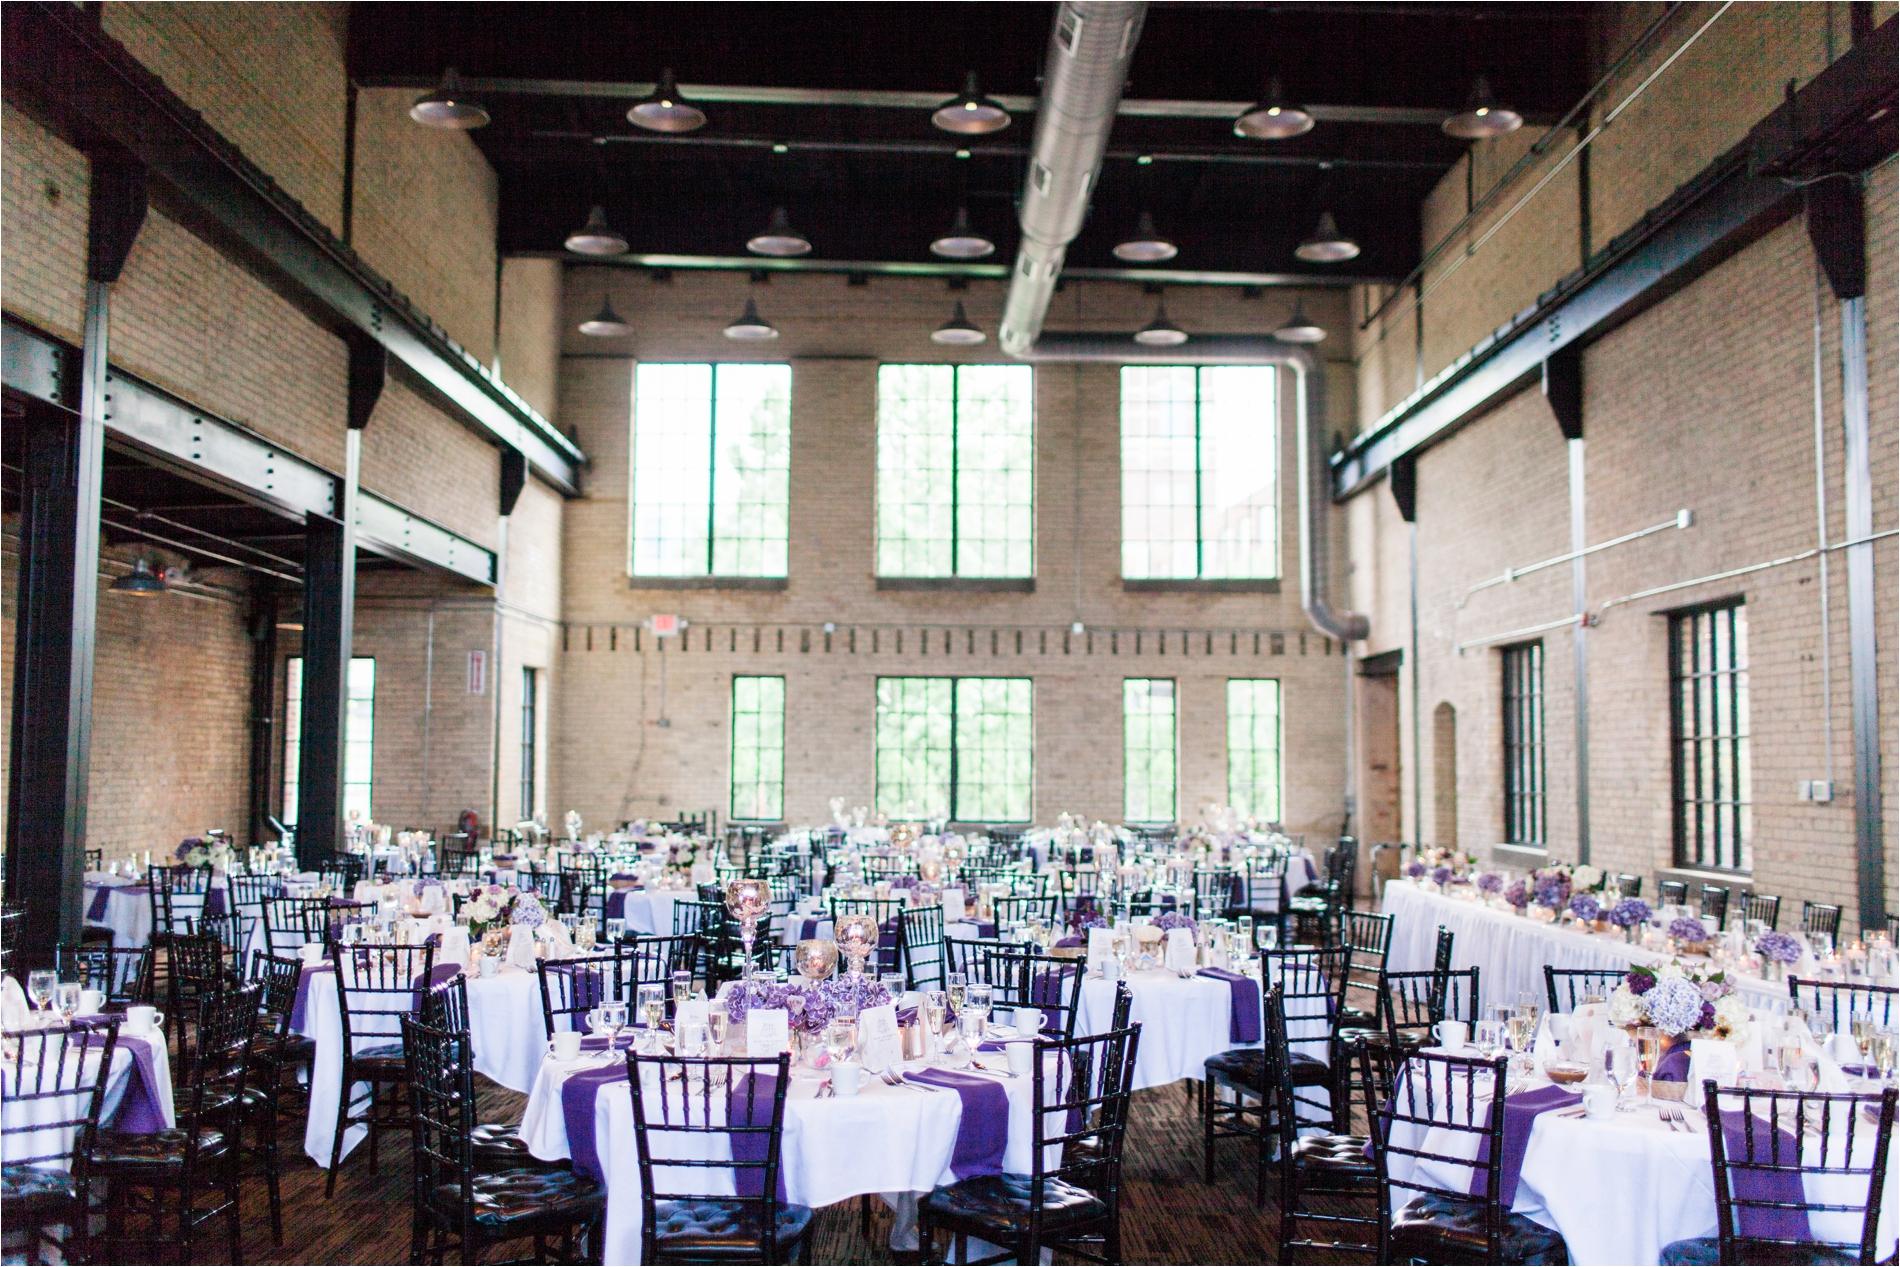 the_new_vintage_place_wedding_loft_warehouse_venue_grand_rapids_michigan_Photographer_Tifani_Lyn_Pho